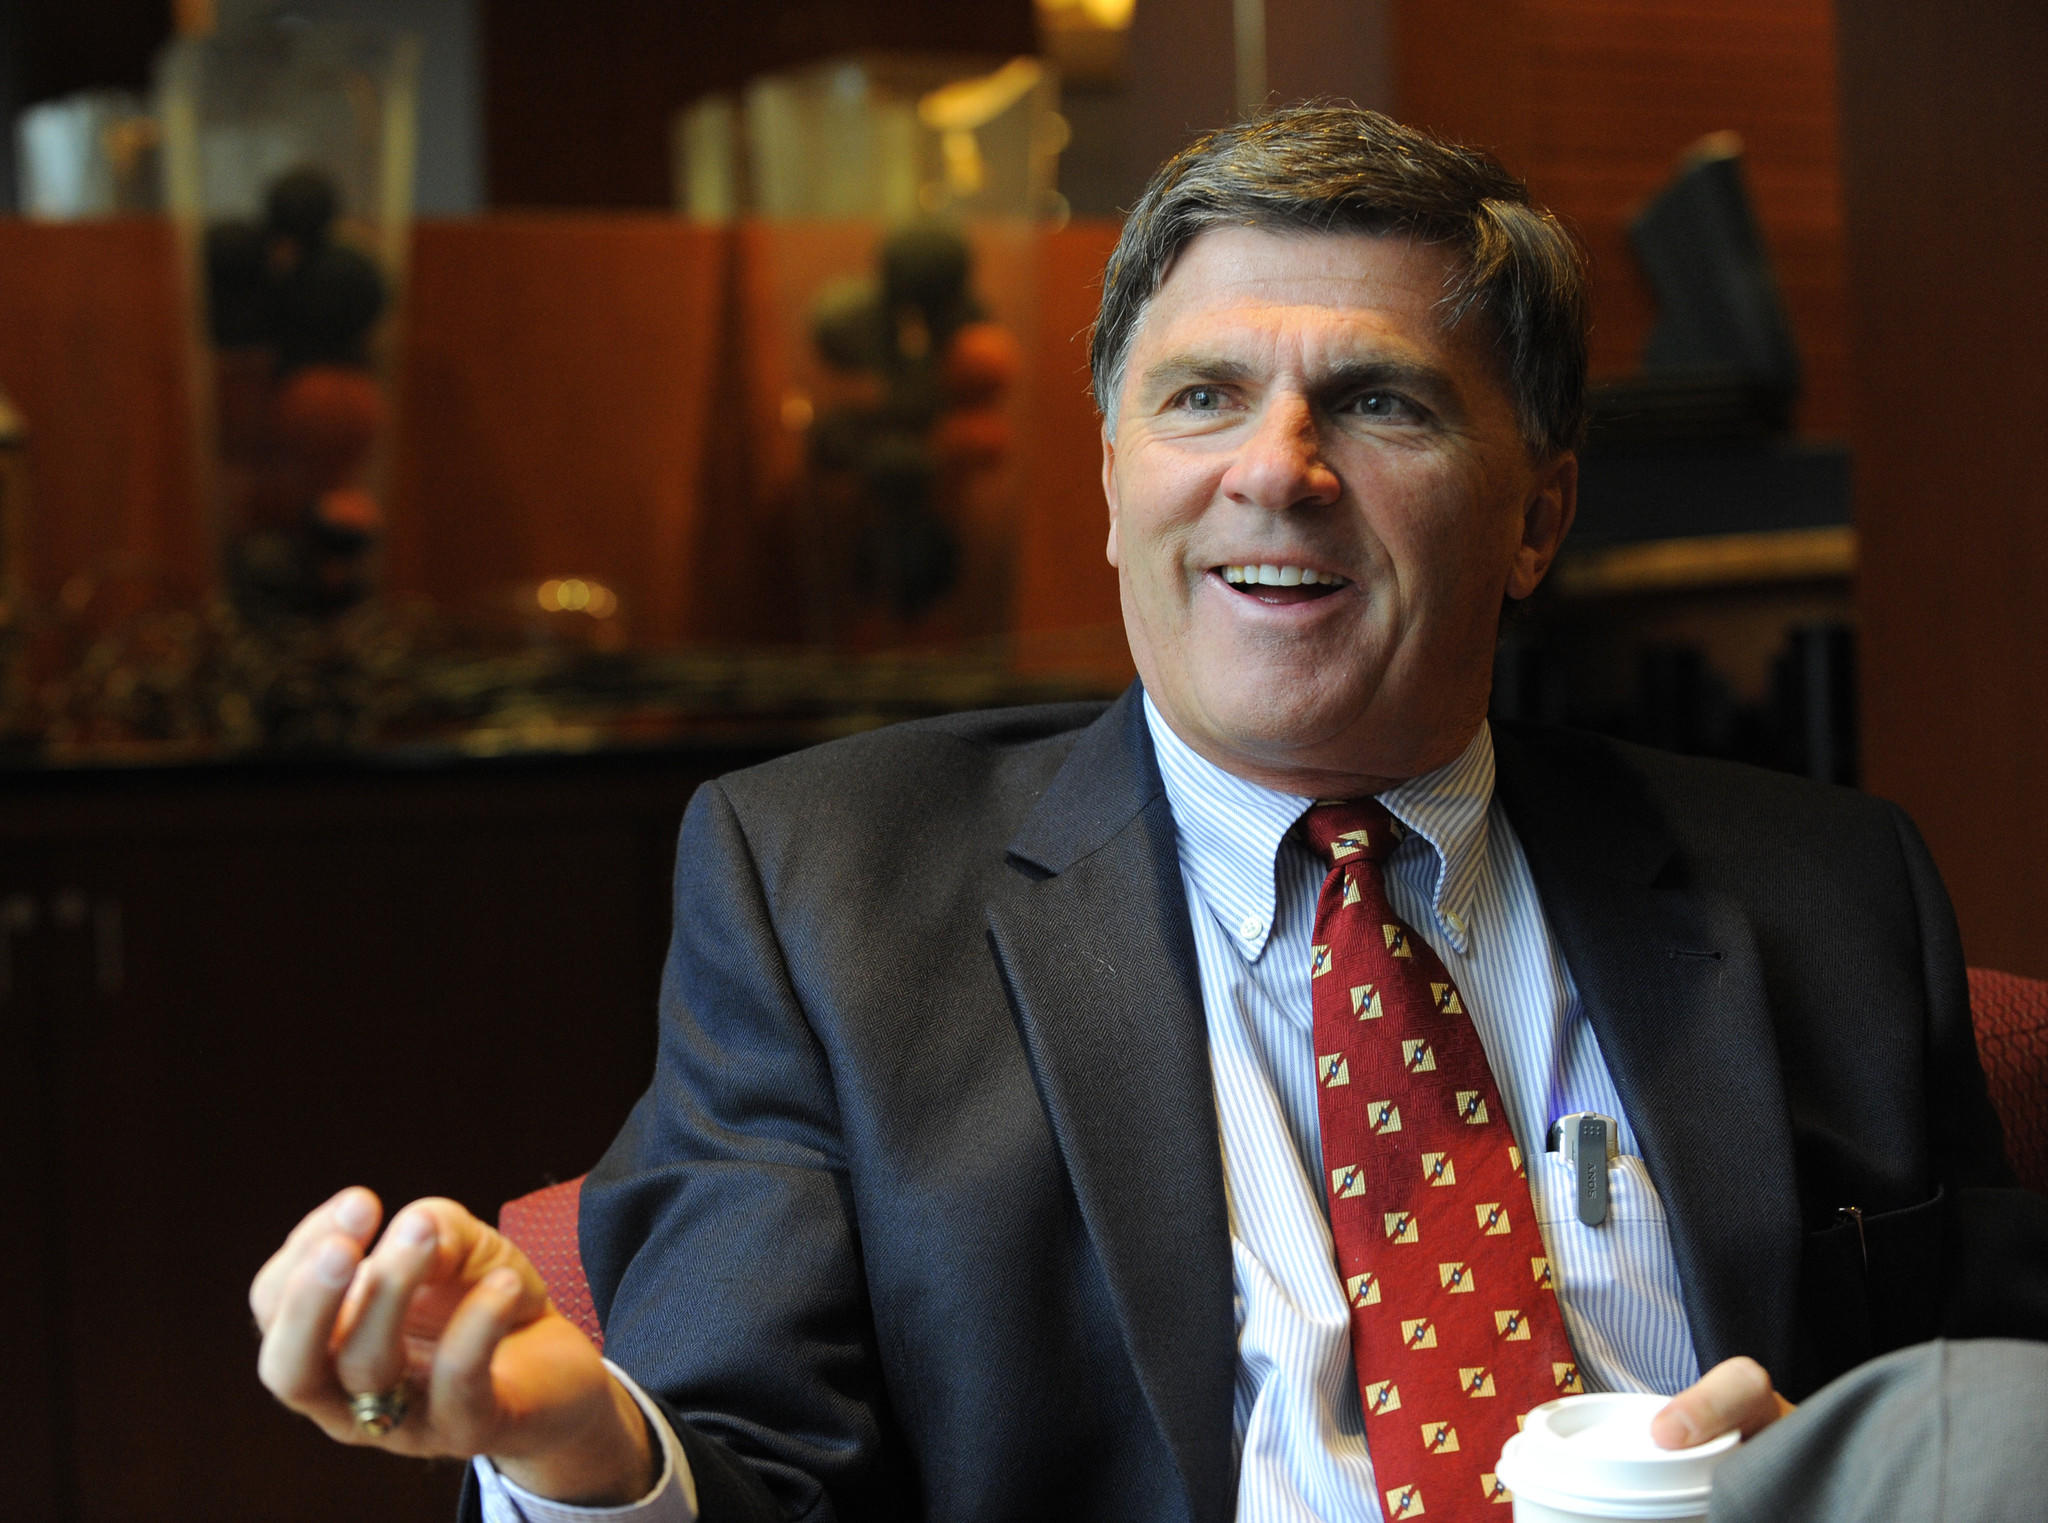 Former Gov. Bob Ehrlich is close with three of the four Republican candidates in this month's gubernatorial primary, and therefore, won't make a formal endorsement.